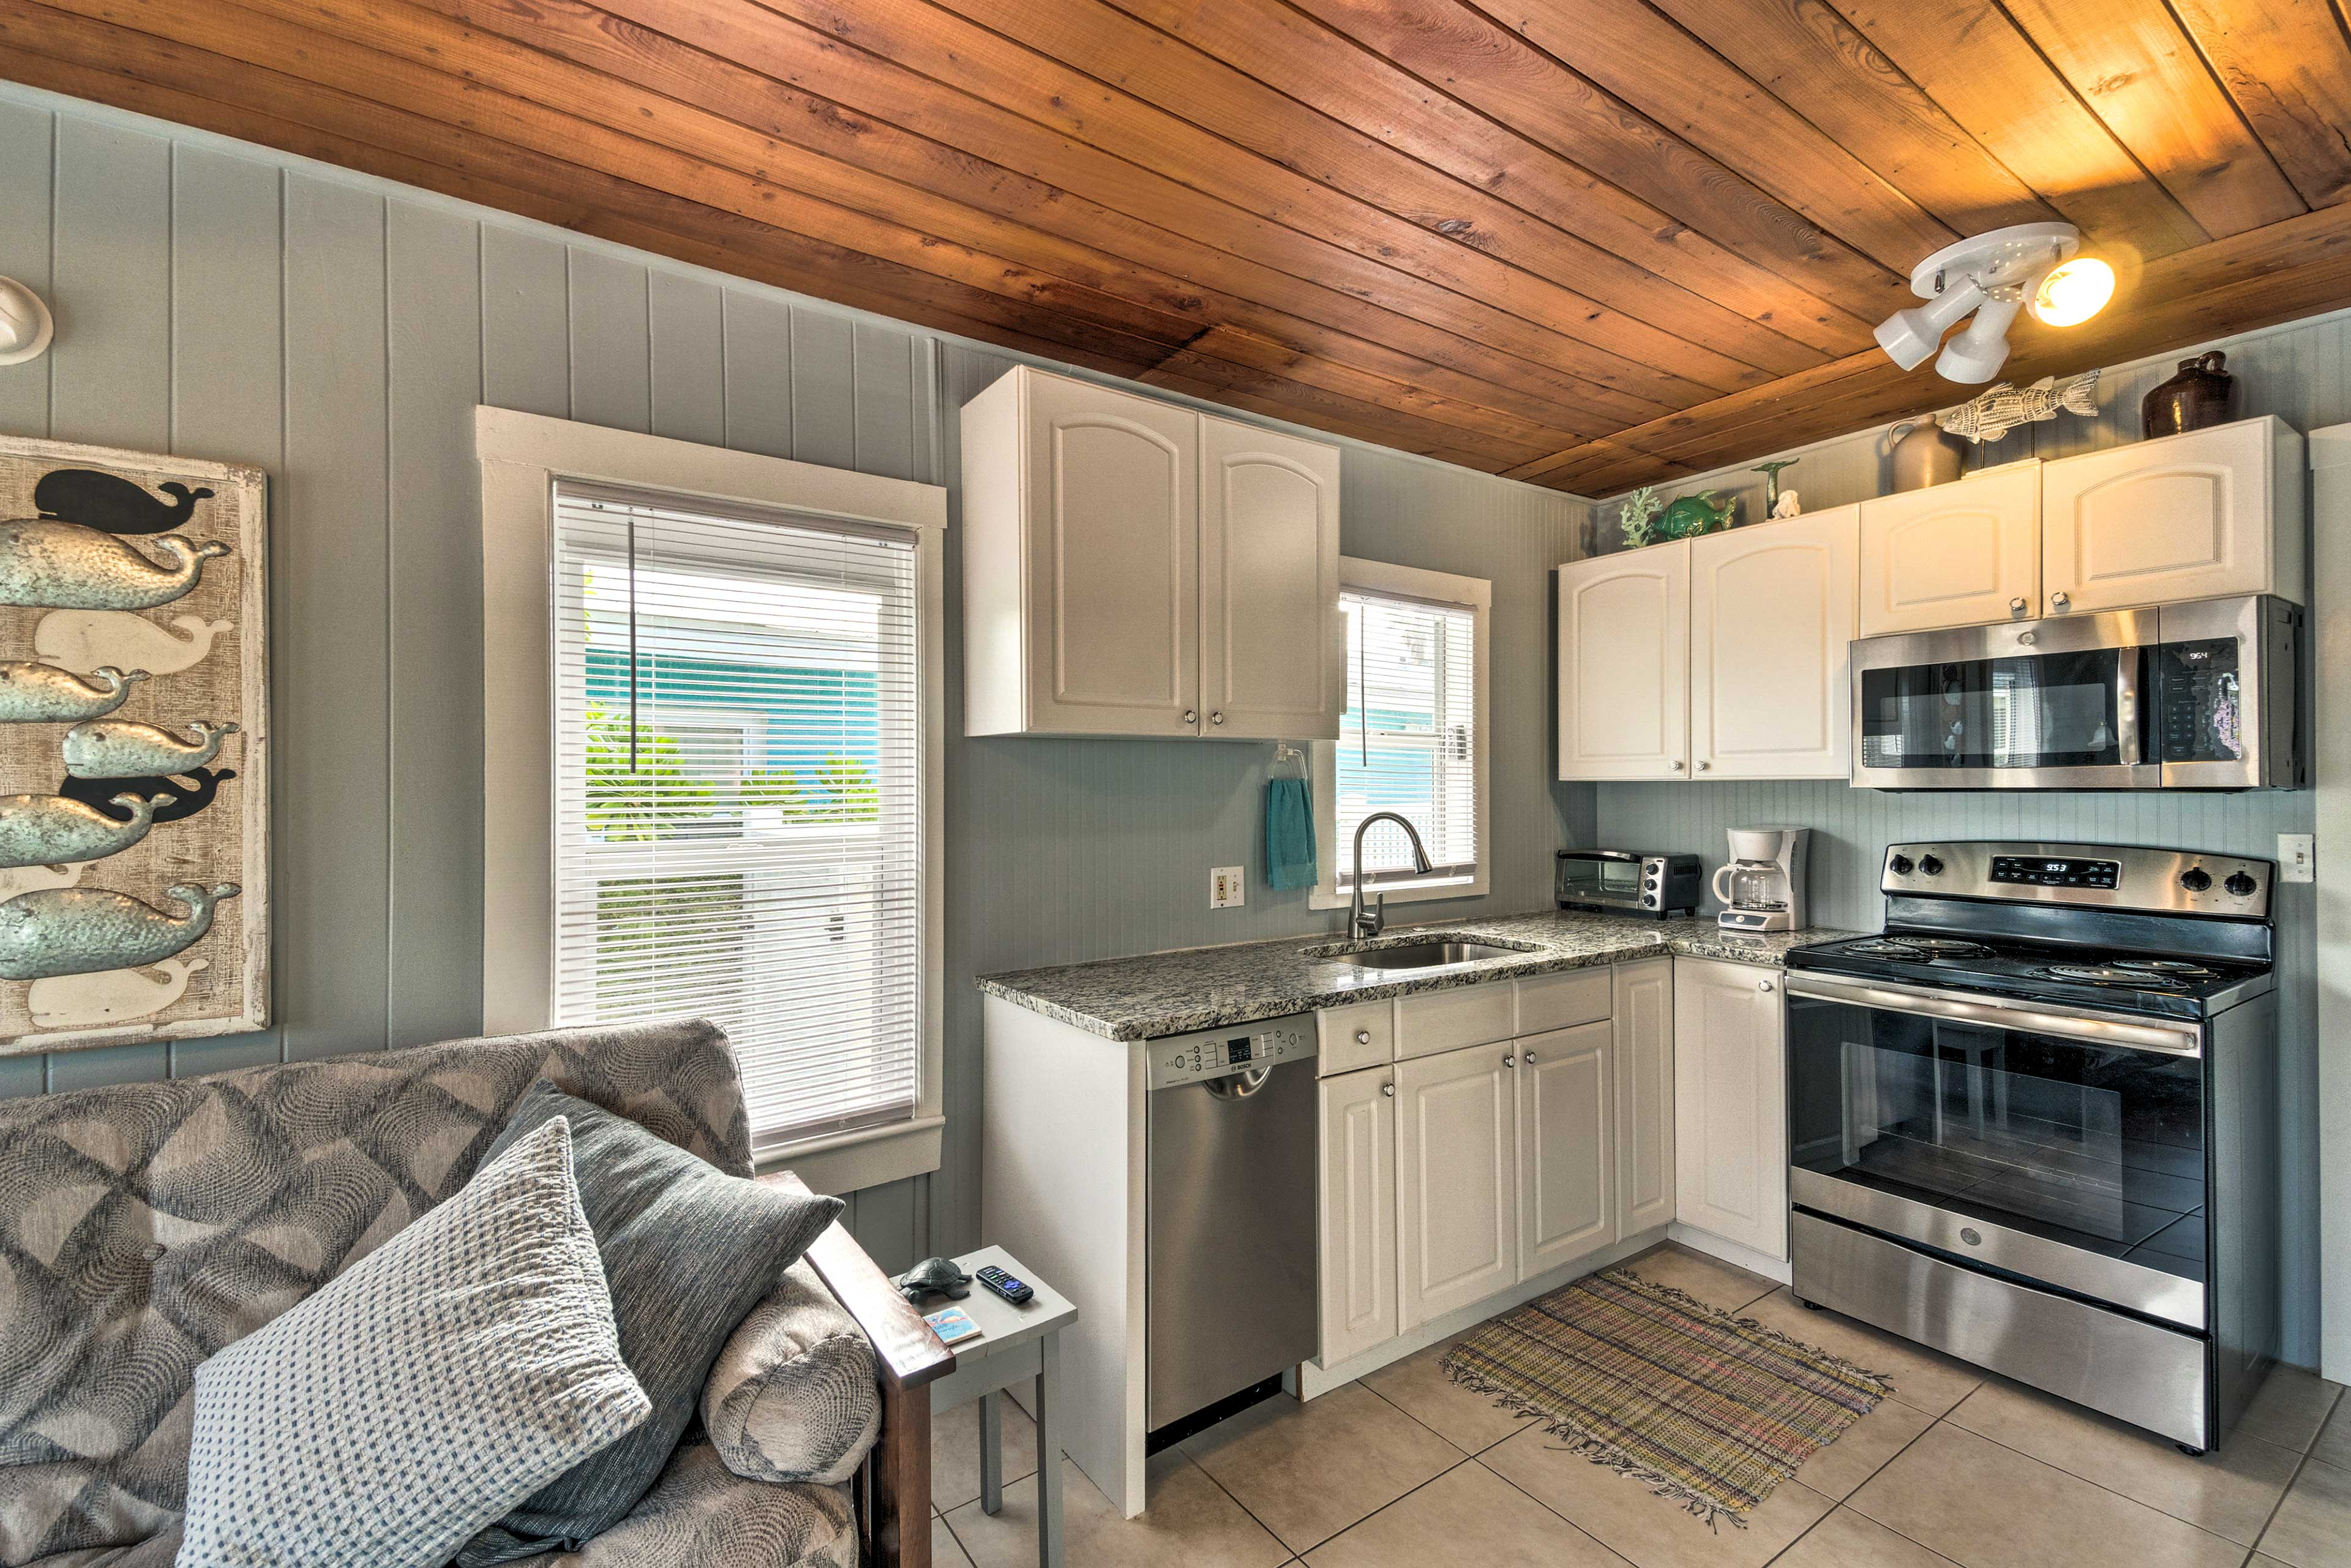 This home features 2 kitchens with updated appliances.